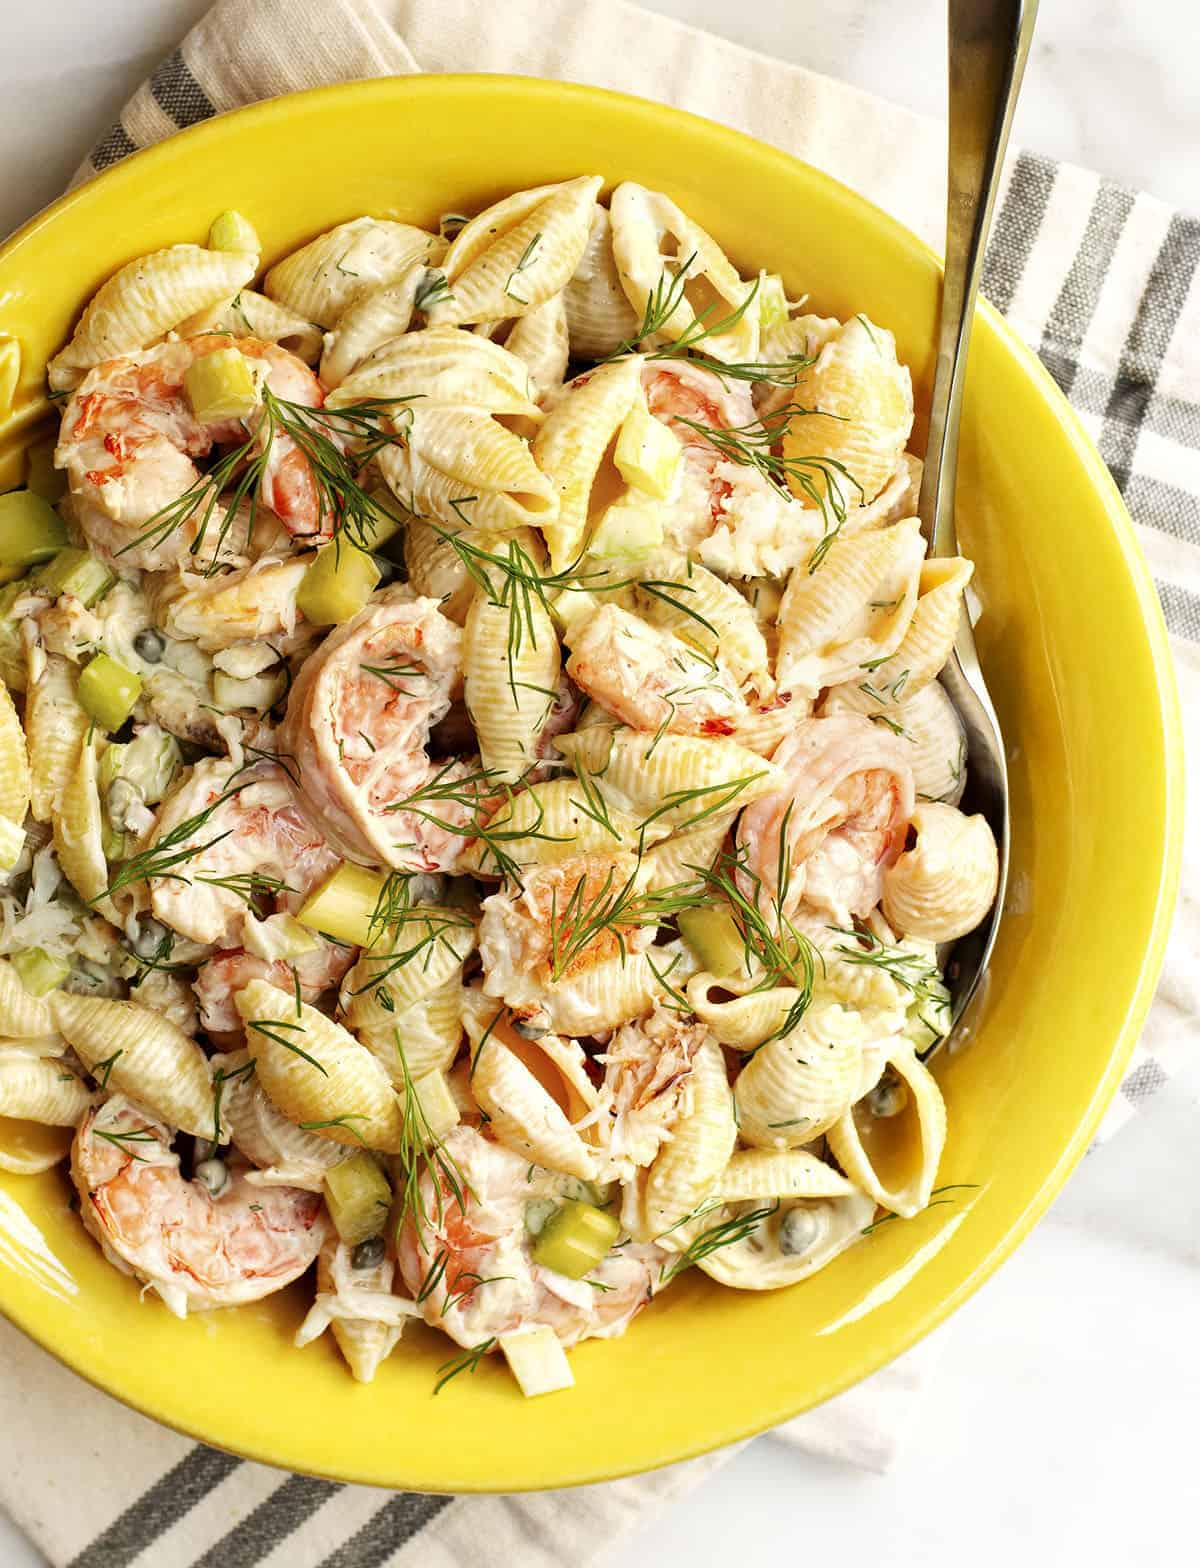 seafood pasta salad served in a yellow ceramic bowl photgraphed from above